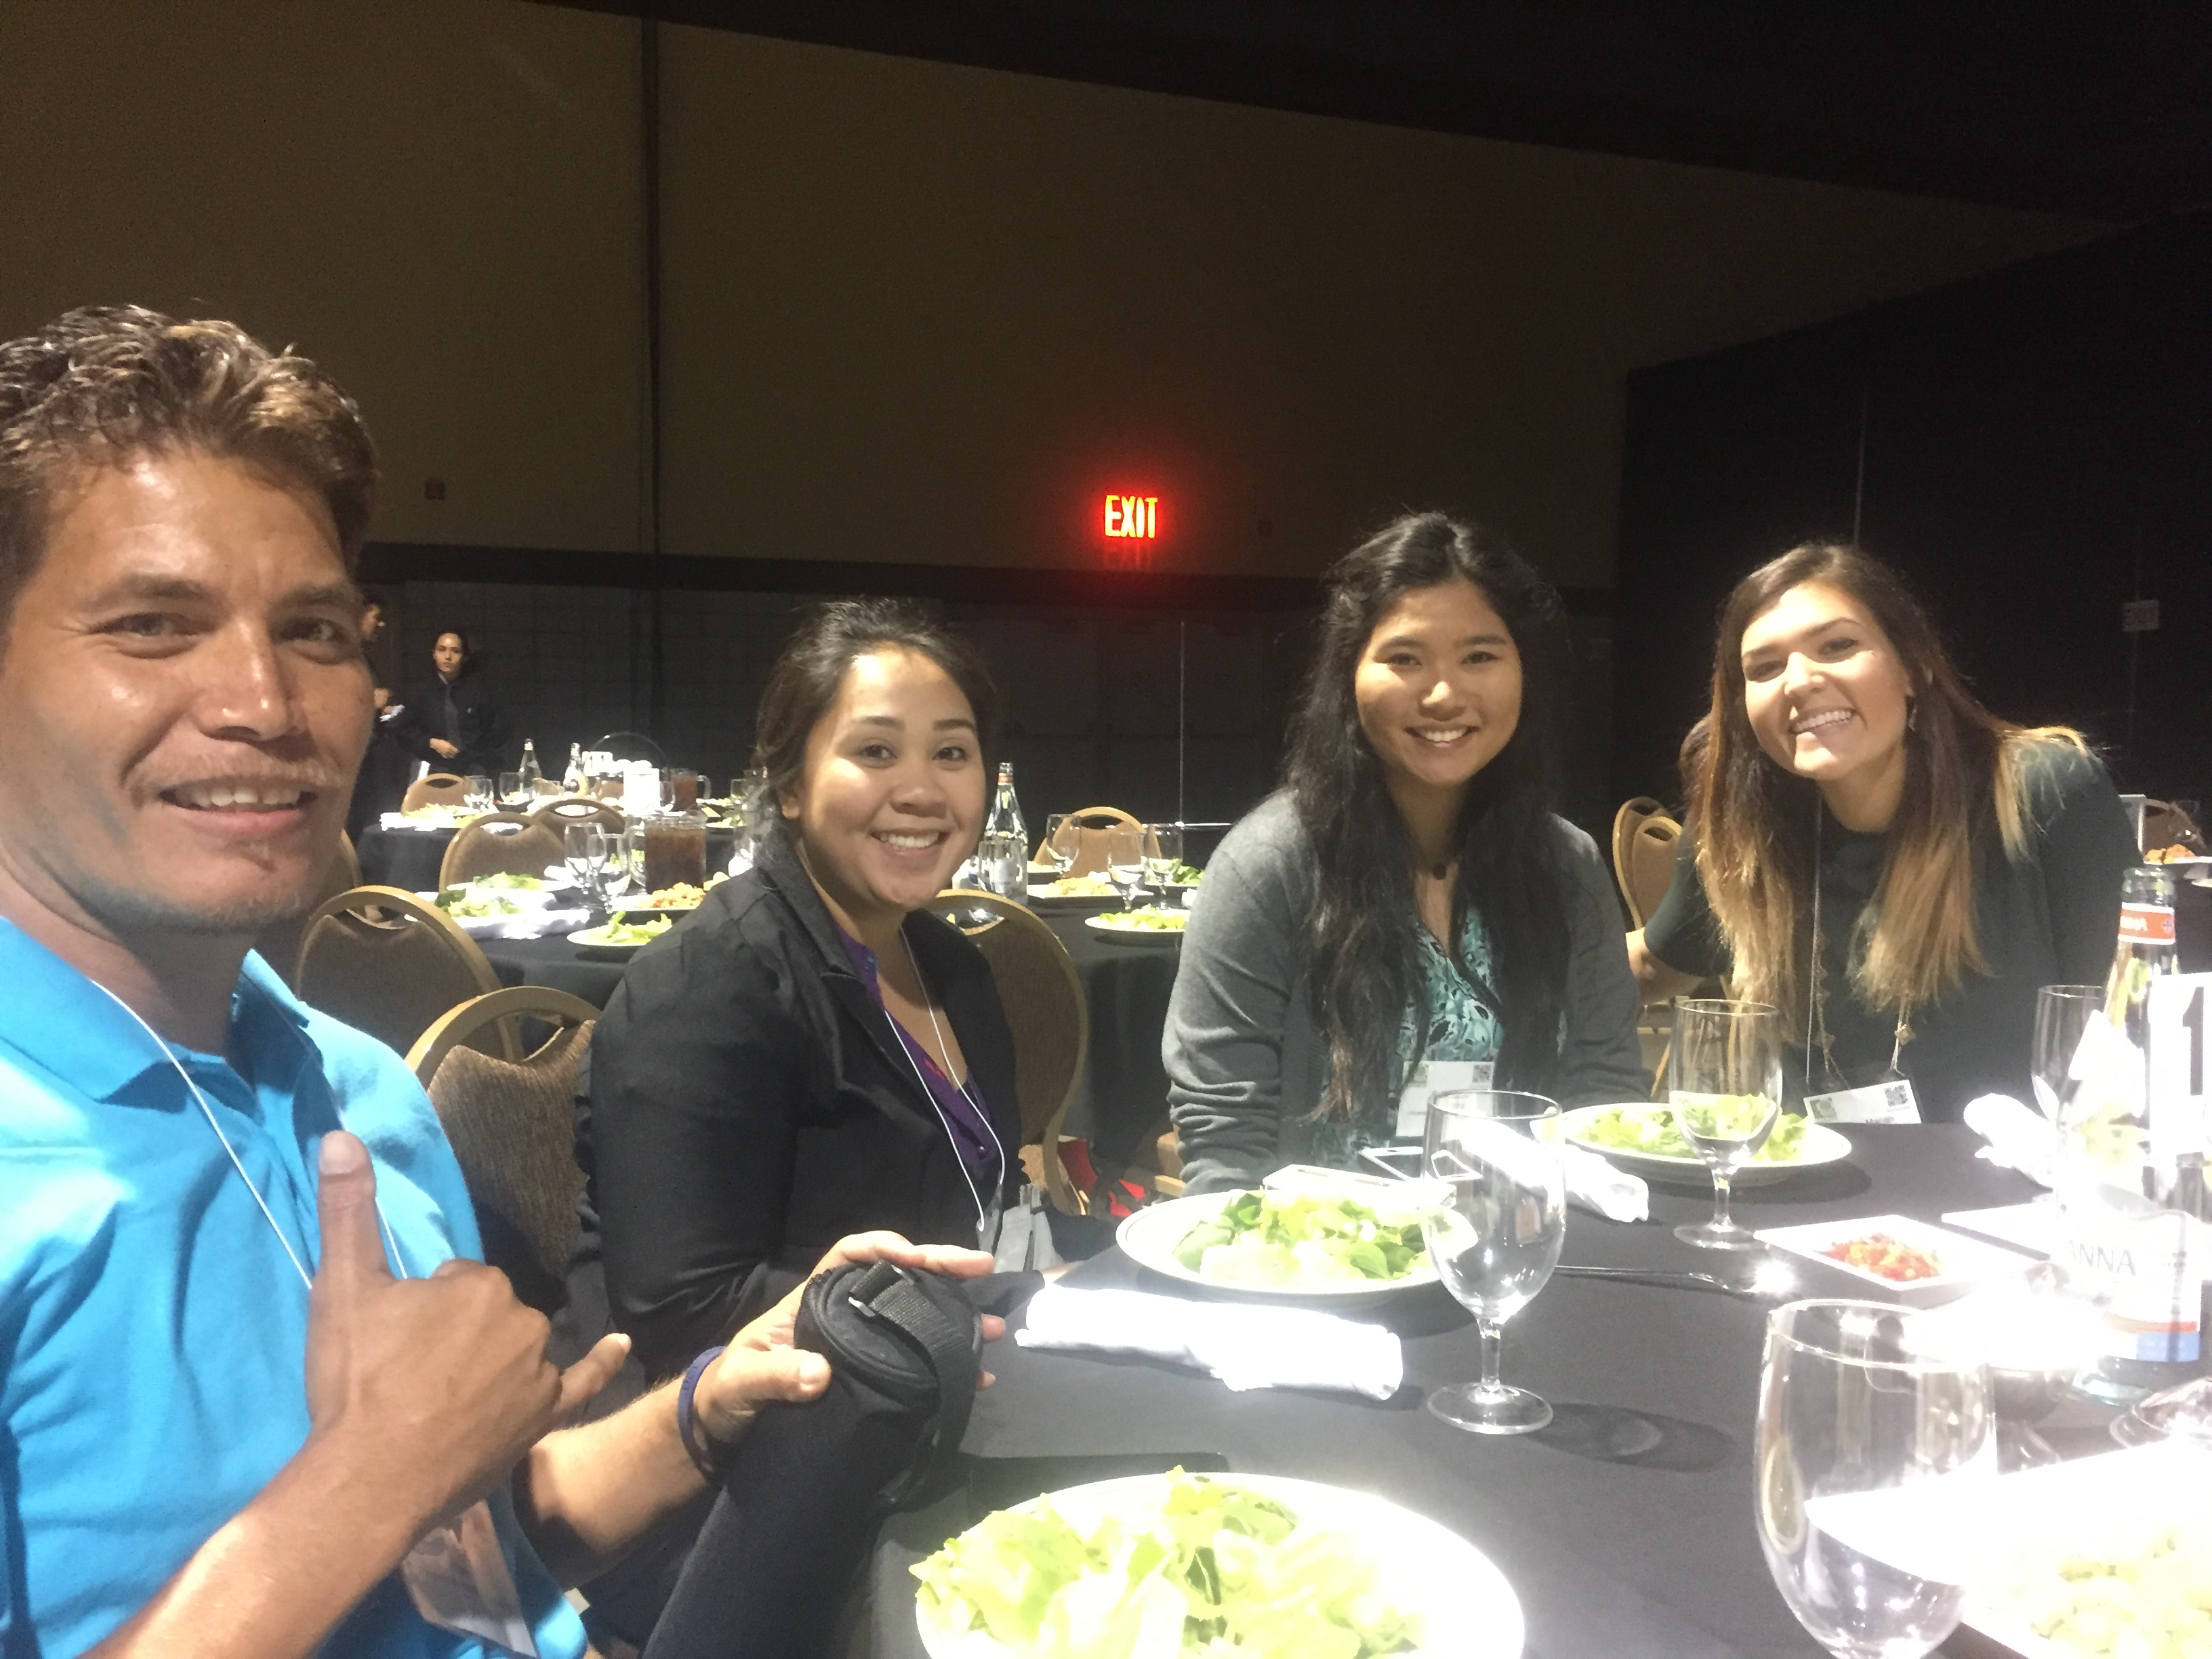 rom left to right: Shane Yaw, Christine Joy Baltazar, Rebecca Oshiro, and Ashley Mariah Lacefield Rodriguez at the SACNAS Conference in October 2016.